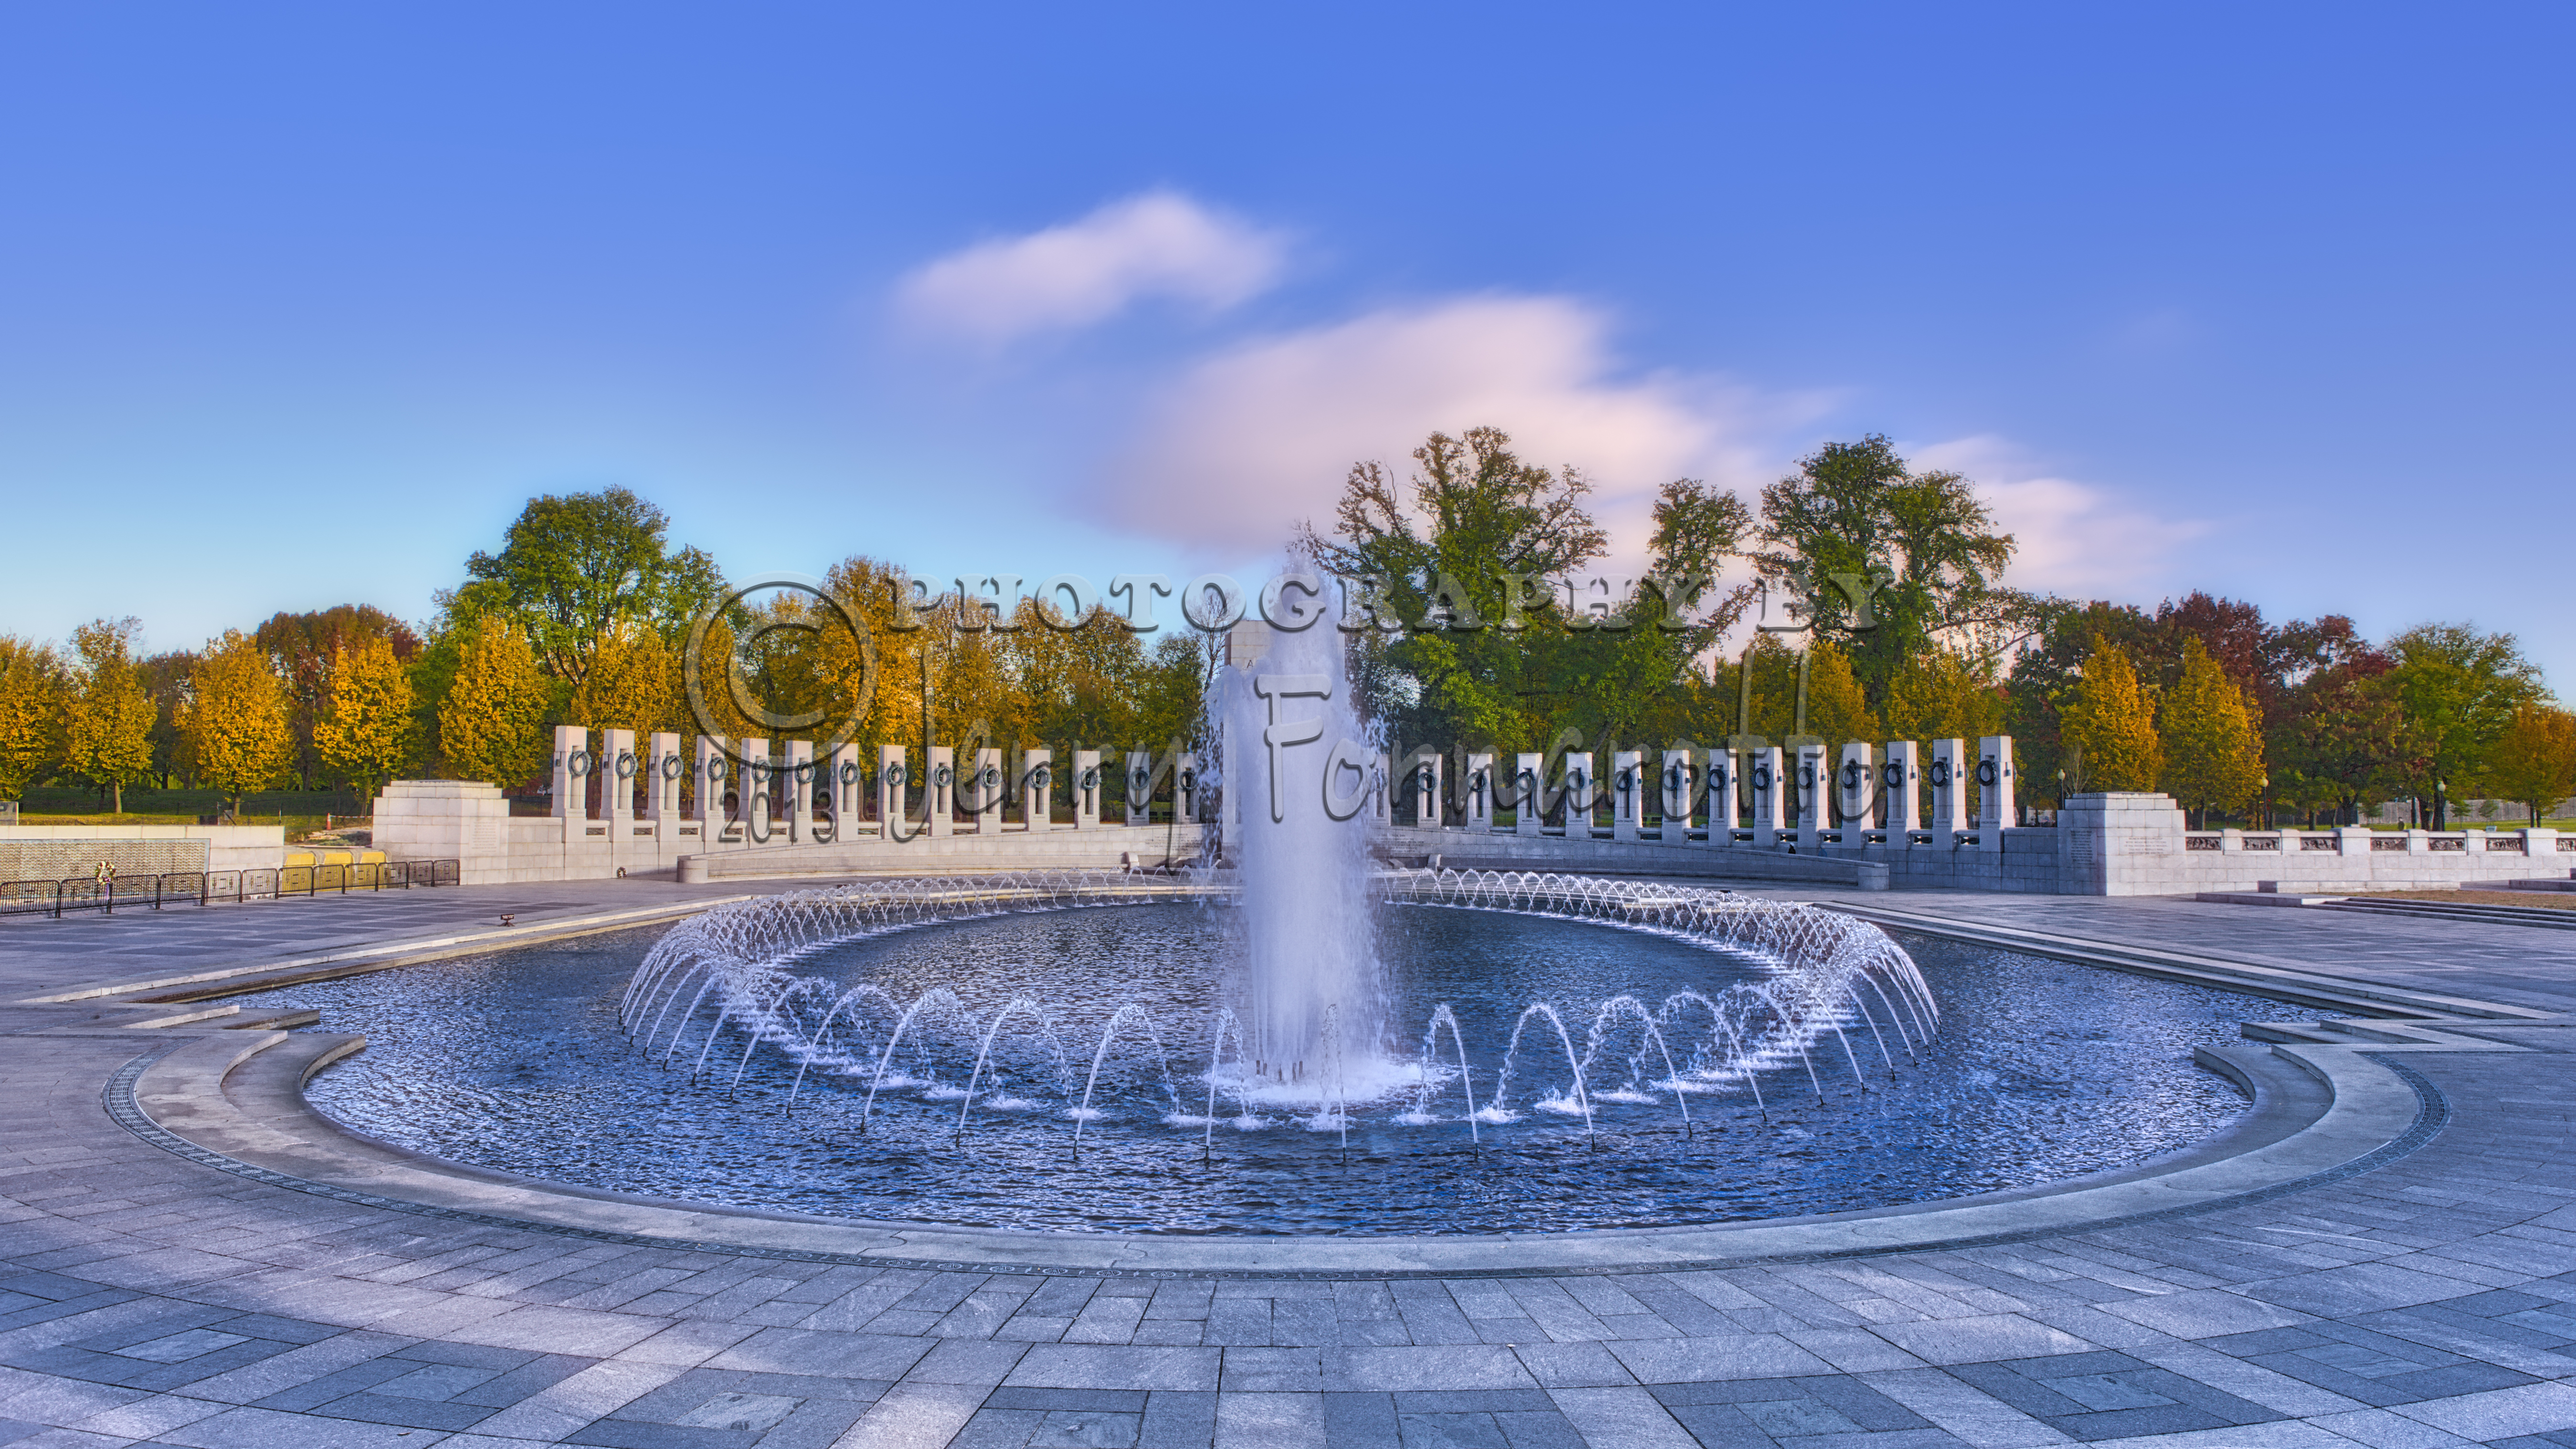 The National World War II Memorial is located on the National Mall in Washington D.C.. It is dedicated to the Americans who served in the armed forces and to civilans during World War II.